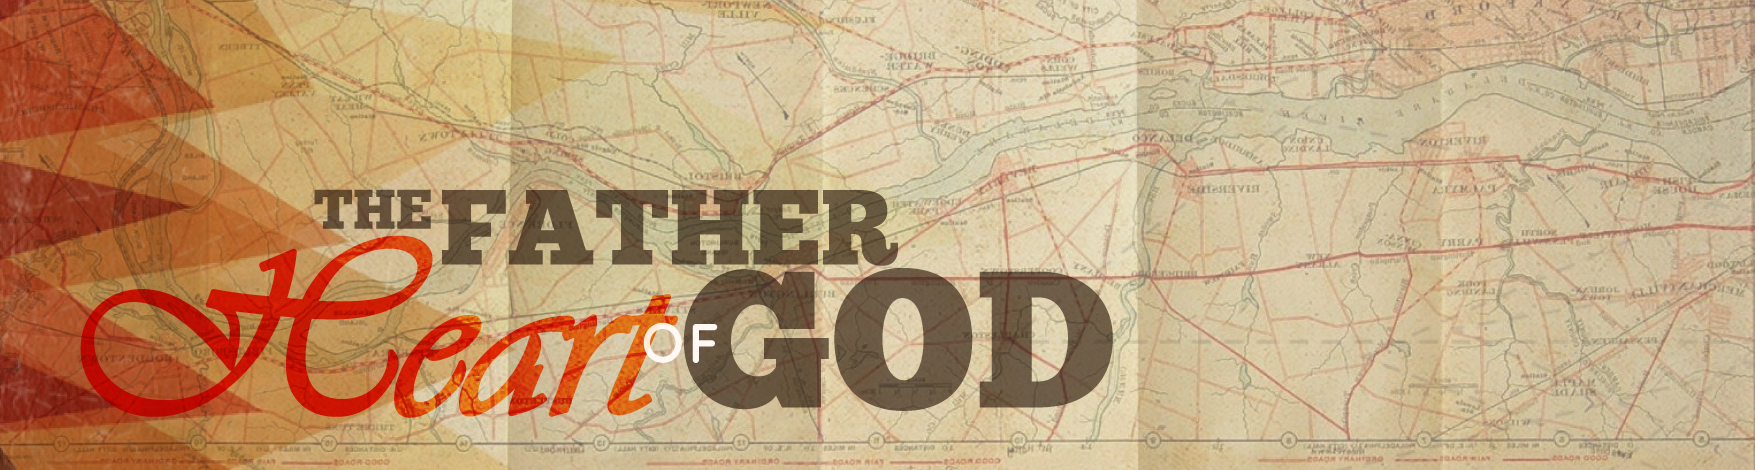 series-father-heart-of-god